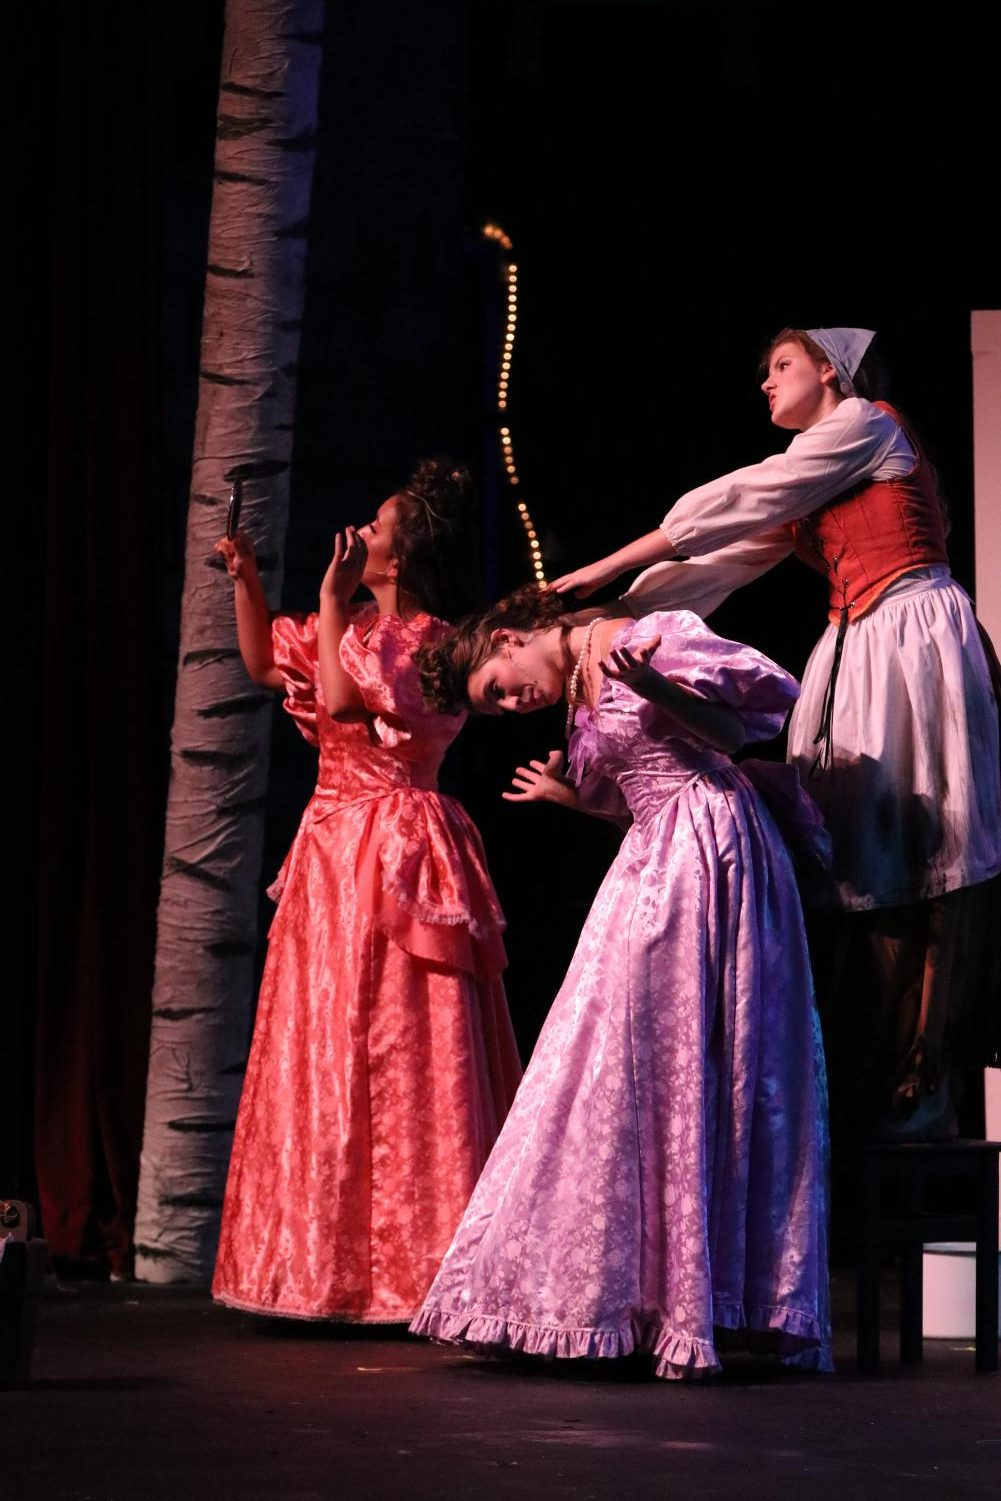 Cinderella, played by senior Abigail Reed, yanks the hair of her step-sister's, played by senior Lily Tungol.